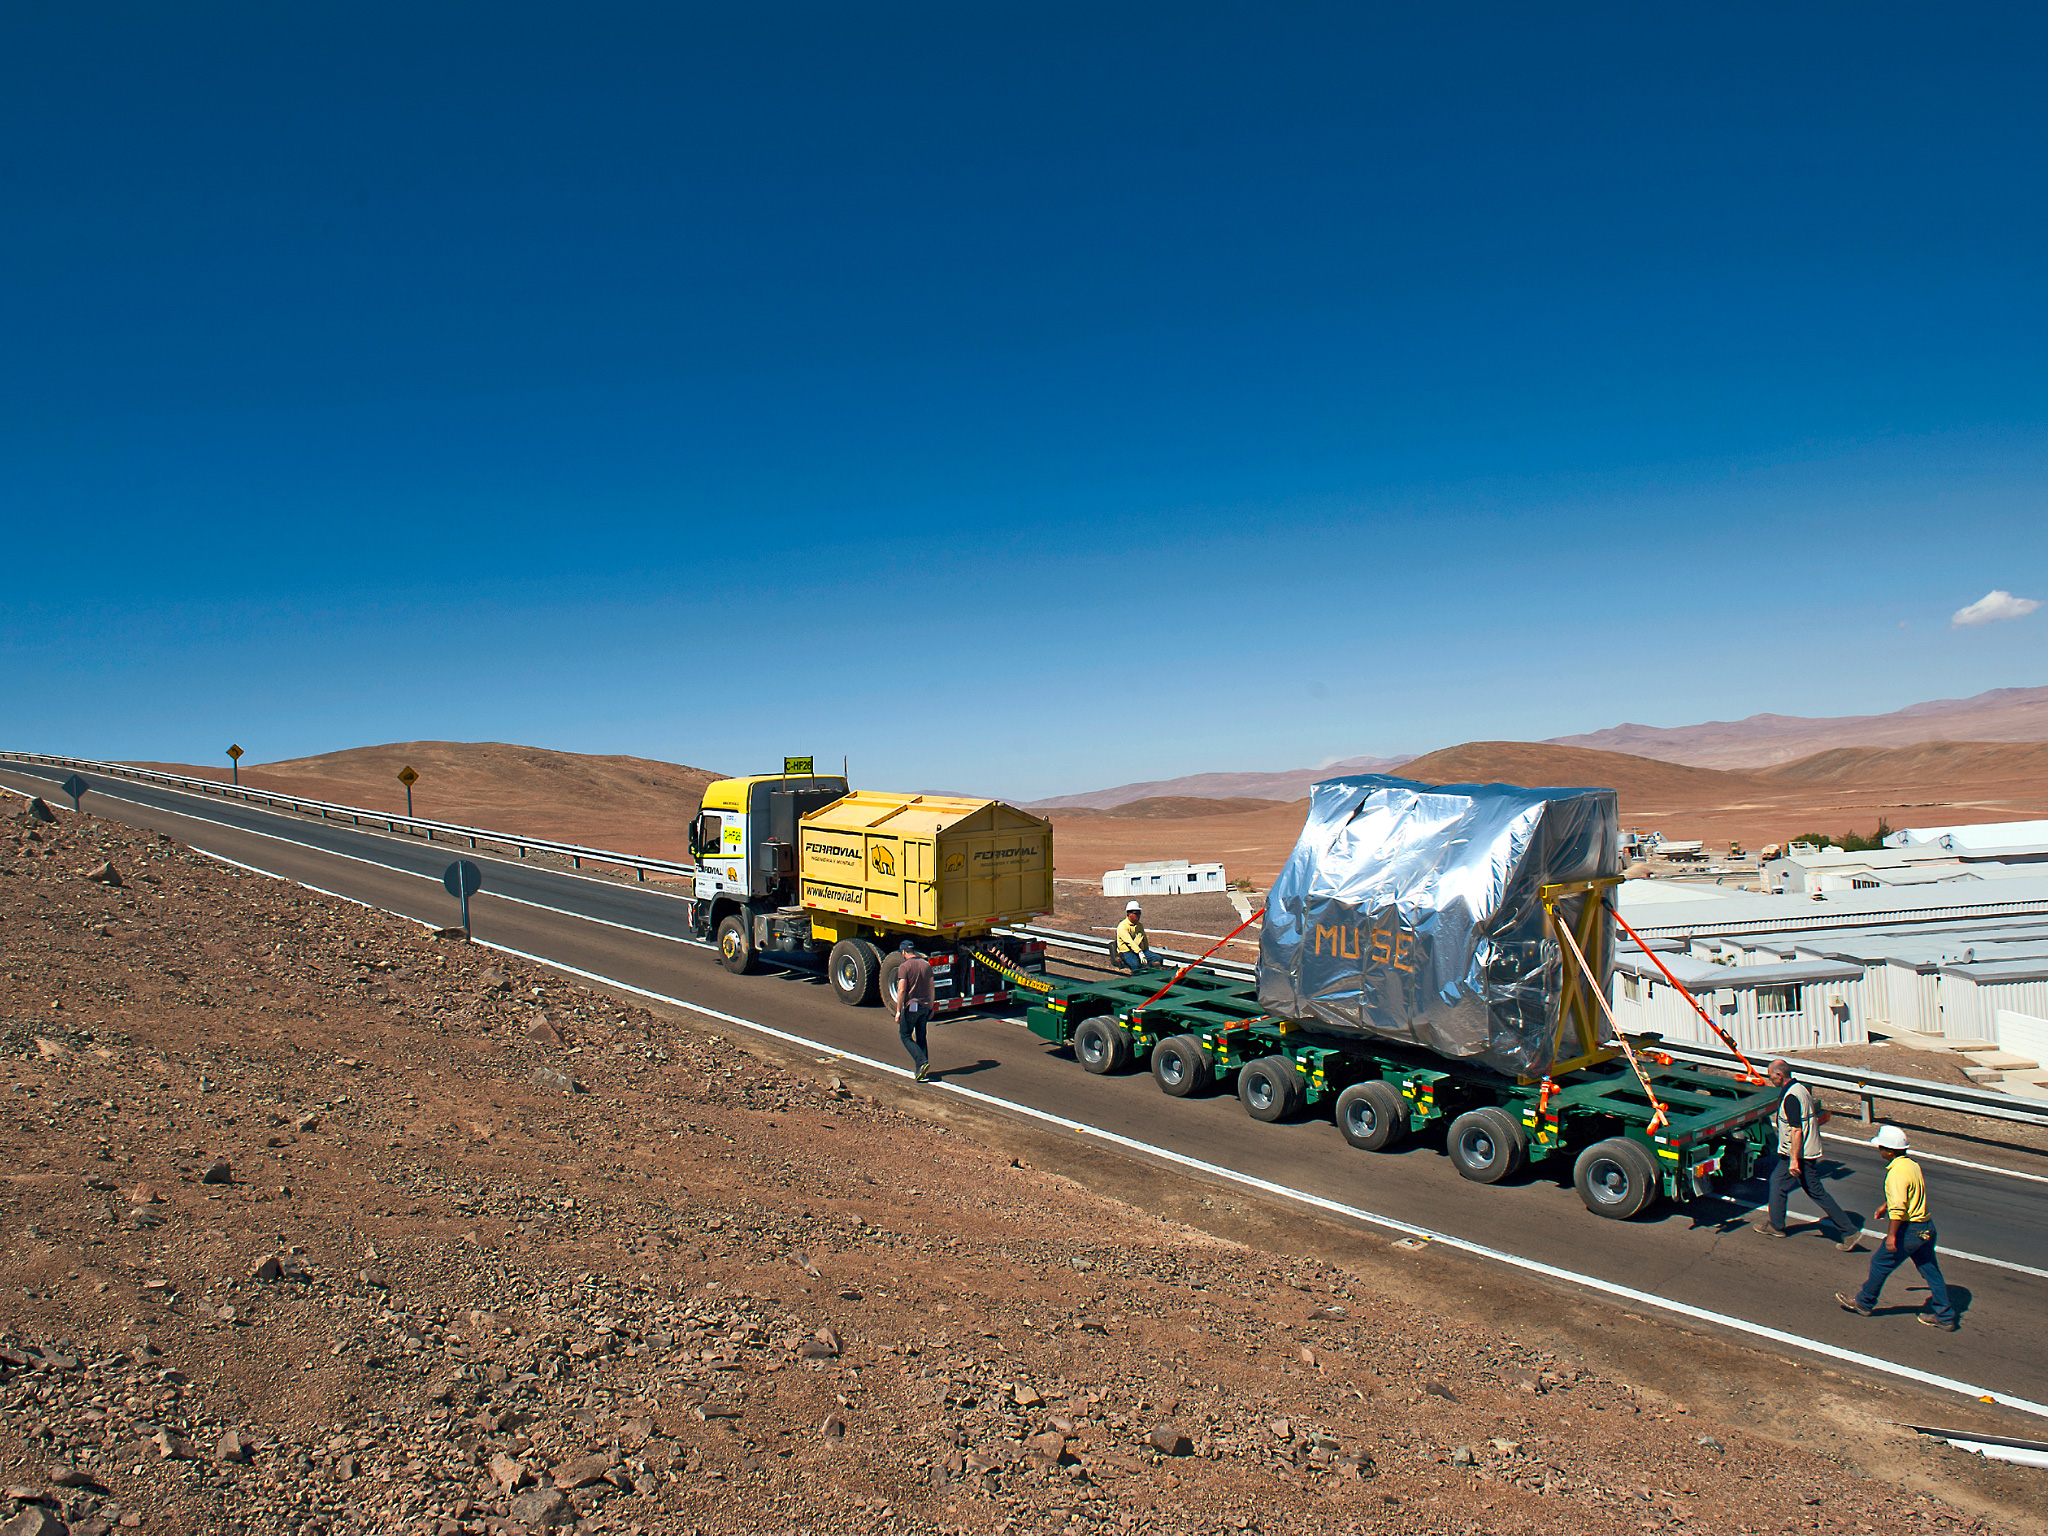 MUSE Makes Final Ascent to Very Large Telescope